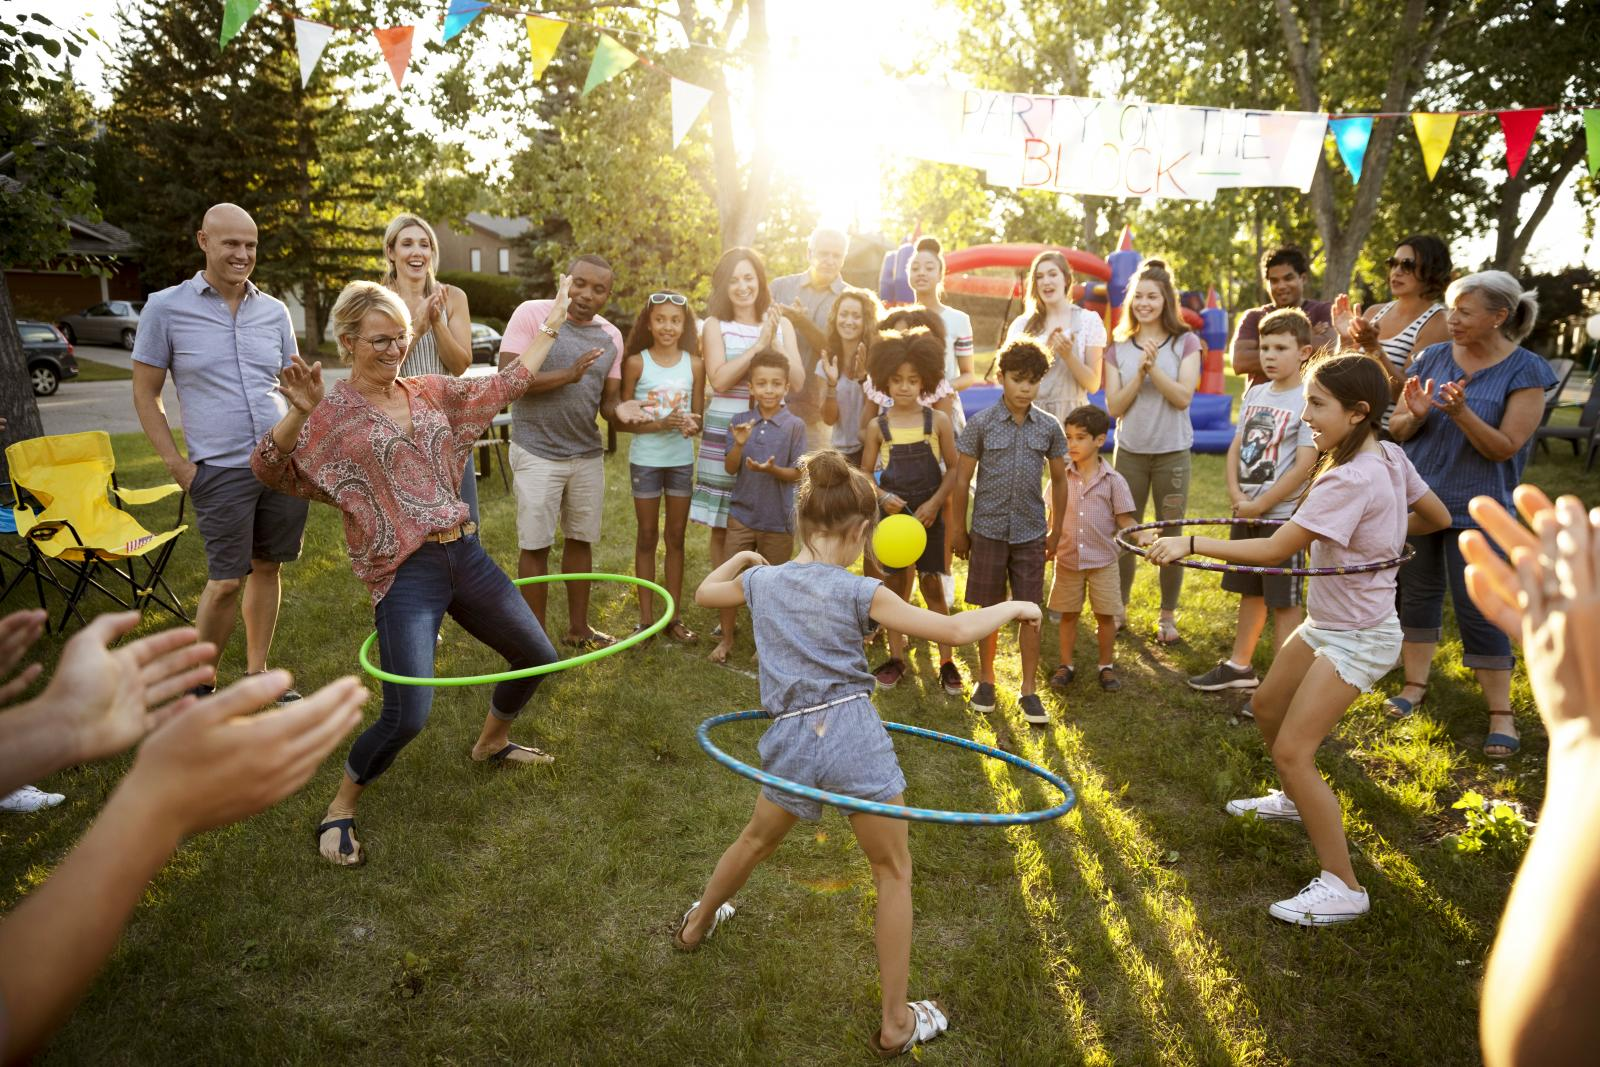 Neighbors spinning in plastic hoops at summer block party in park